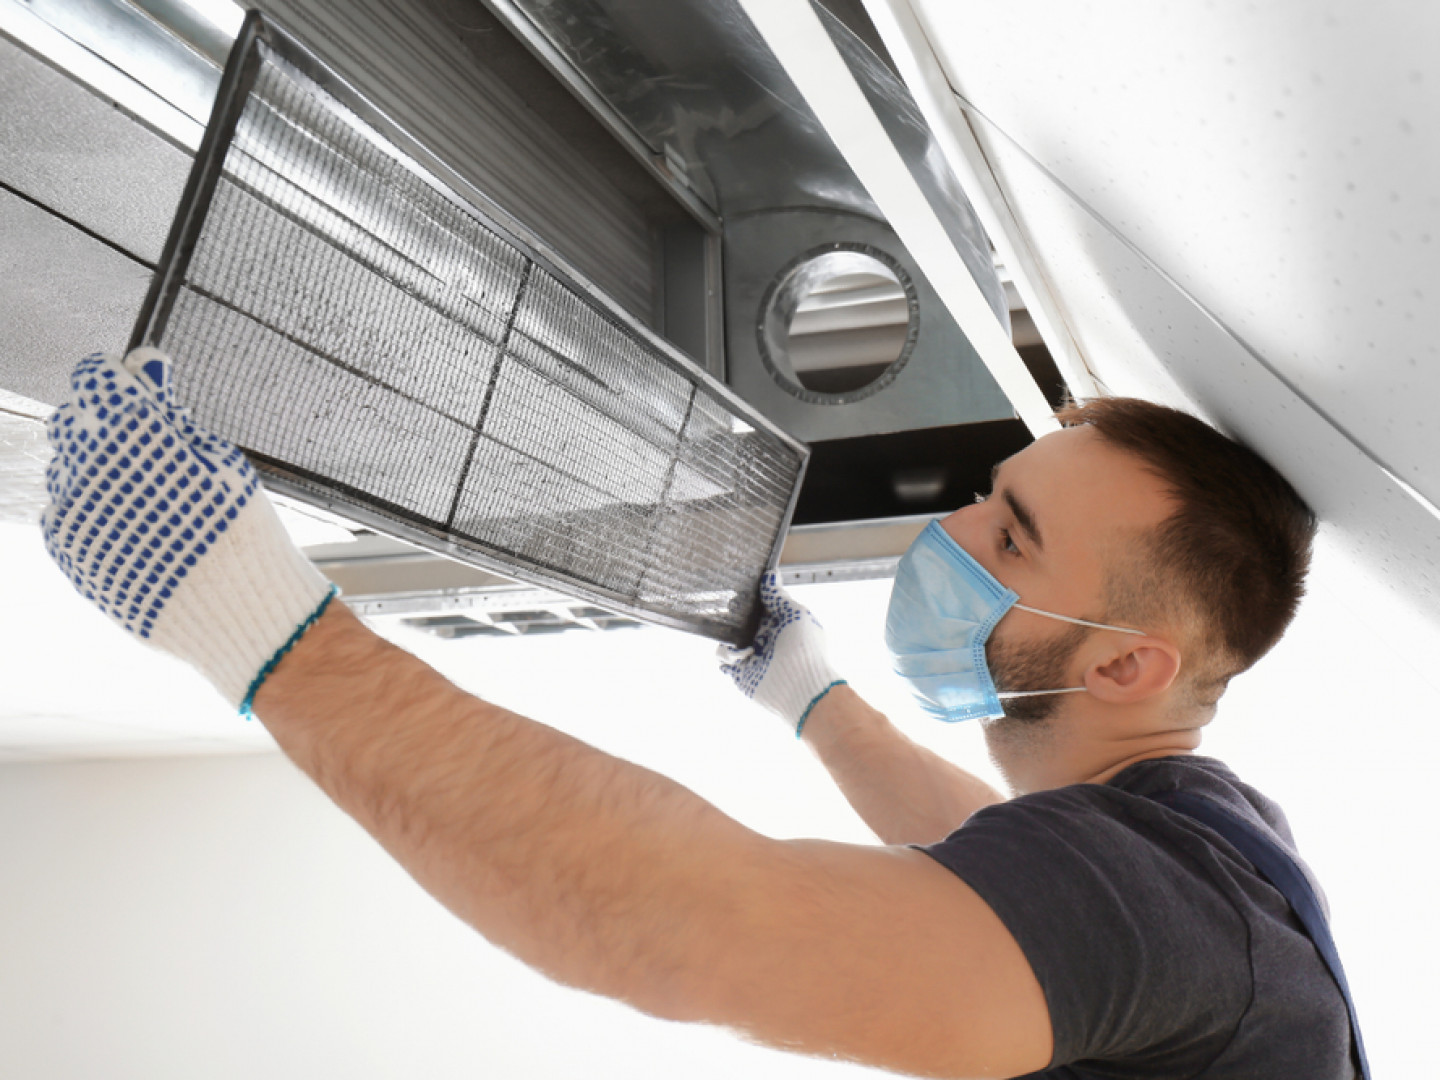 How do you know when you need an AC repair?